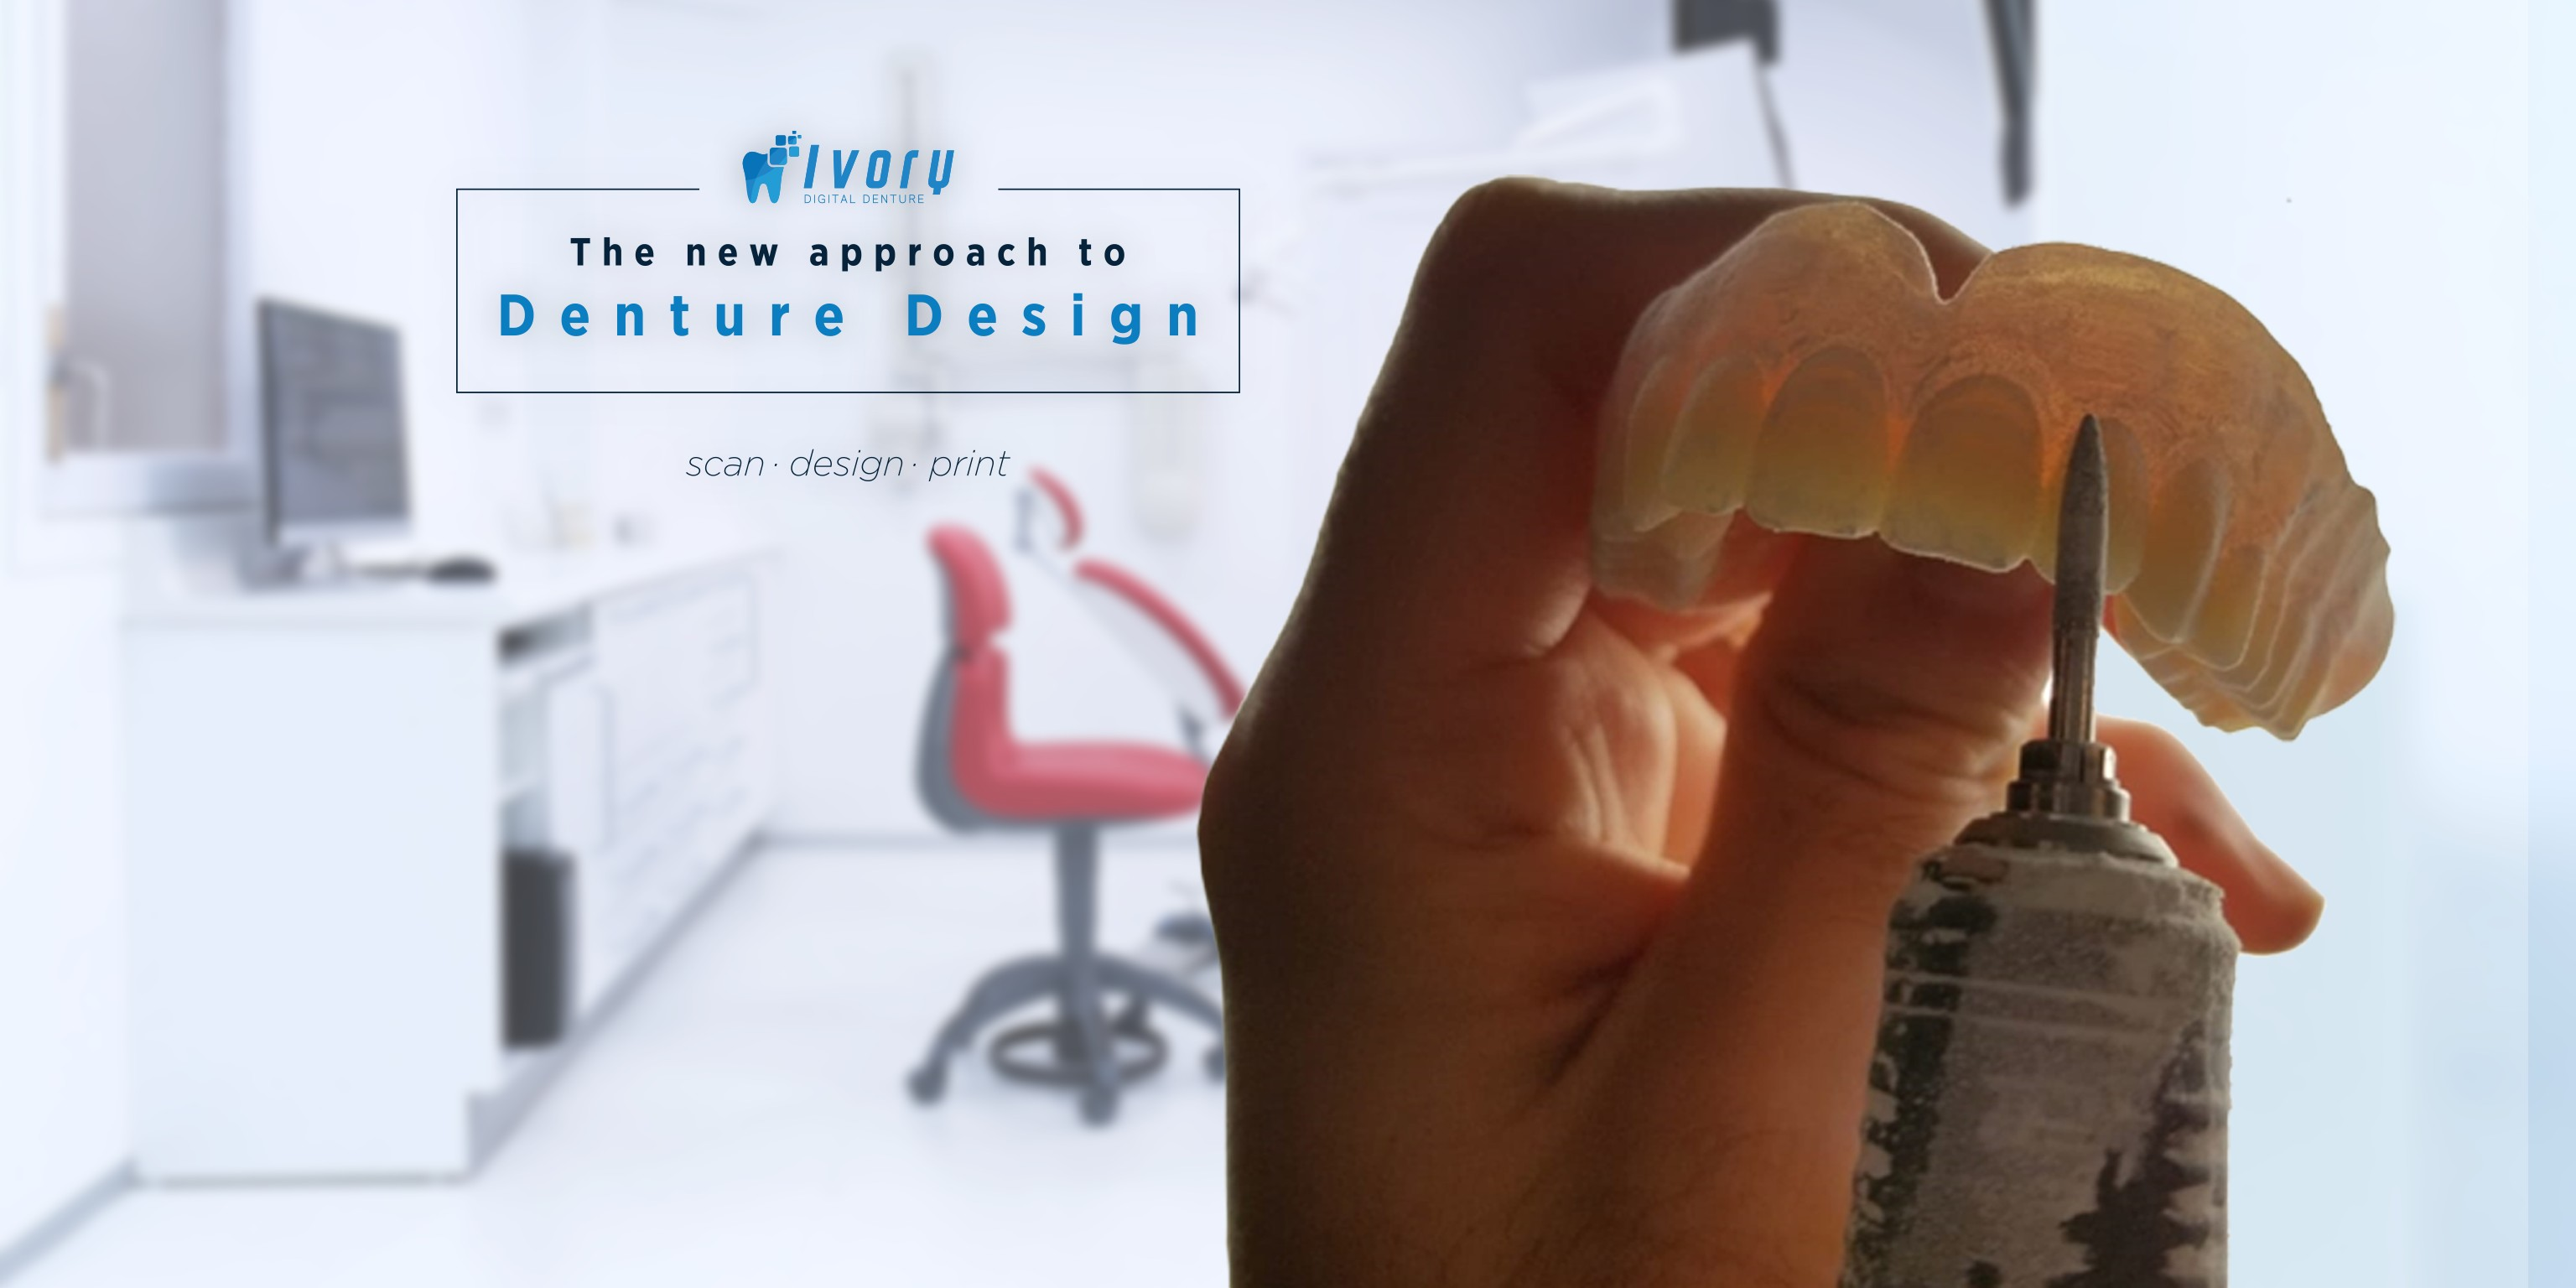 Ivory Digital Denture | LinkedIn